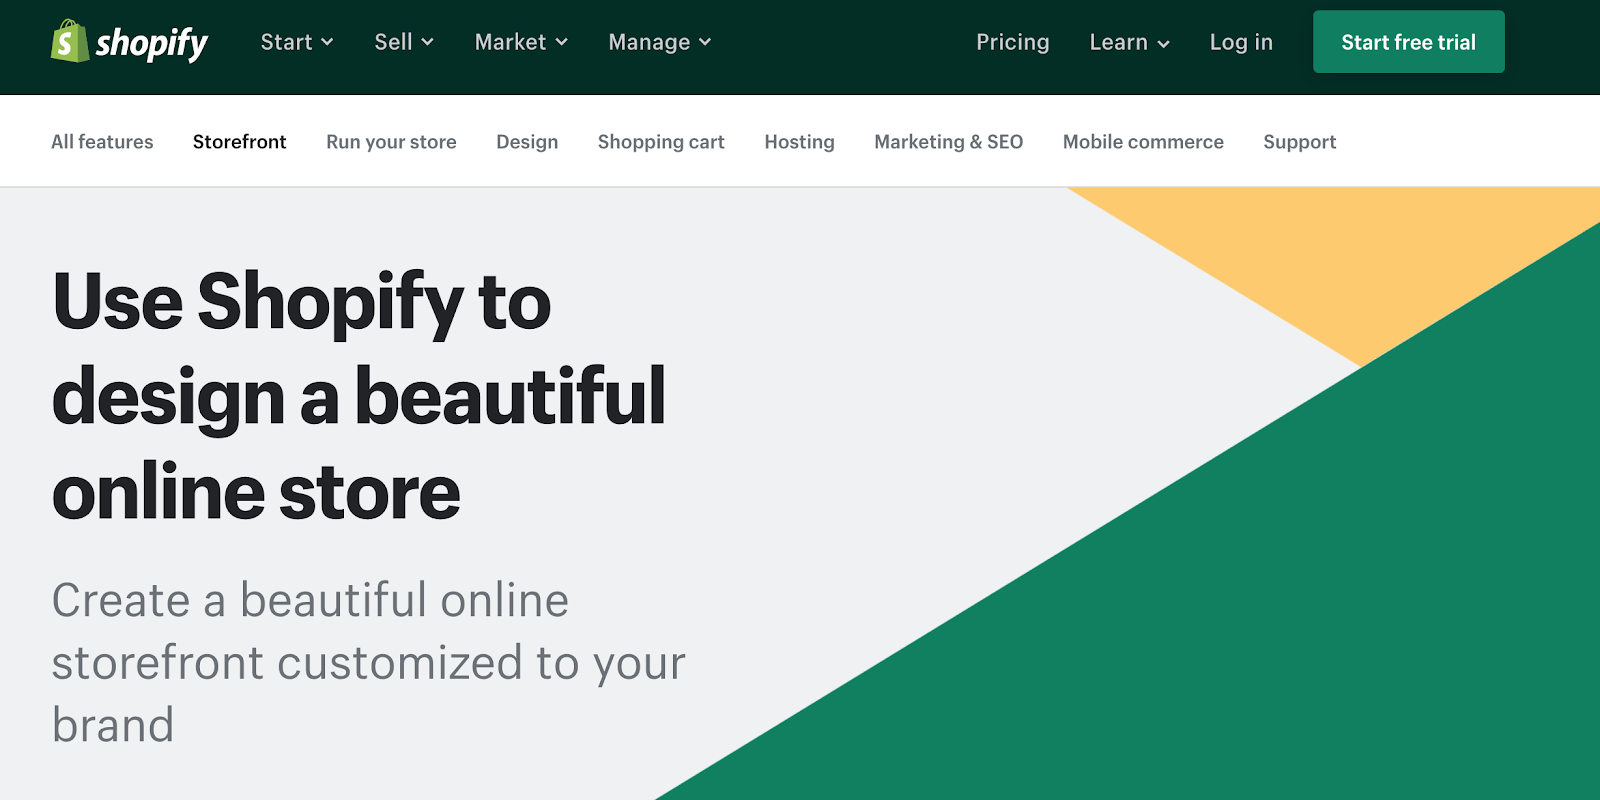 Shopify is one of the biggest competitors to Squarespace